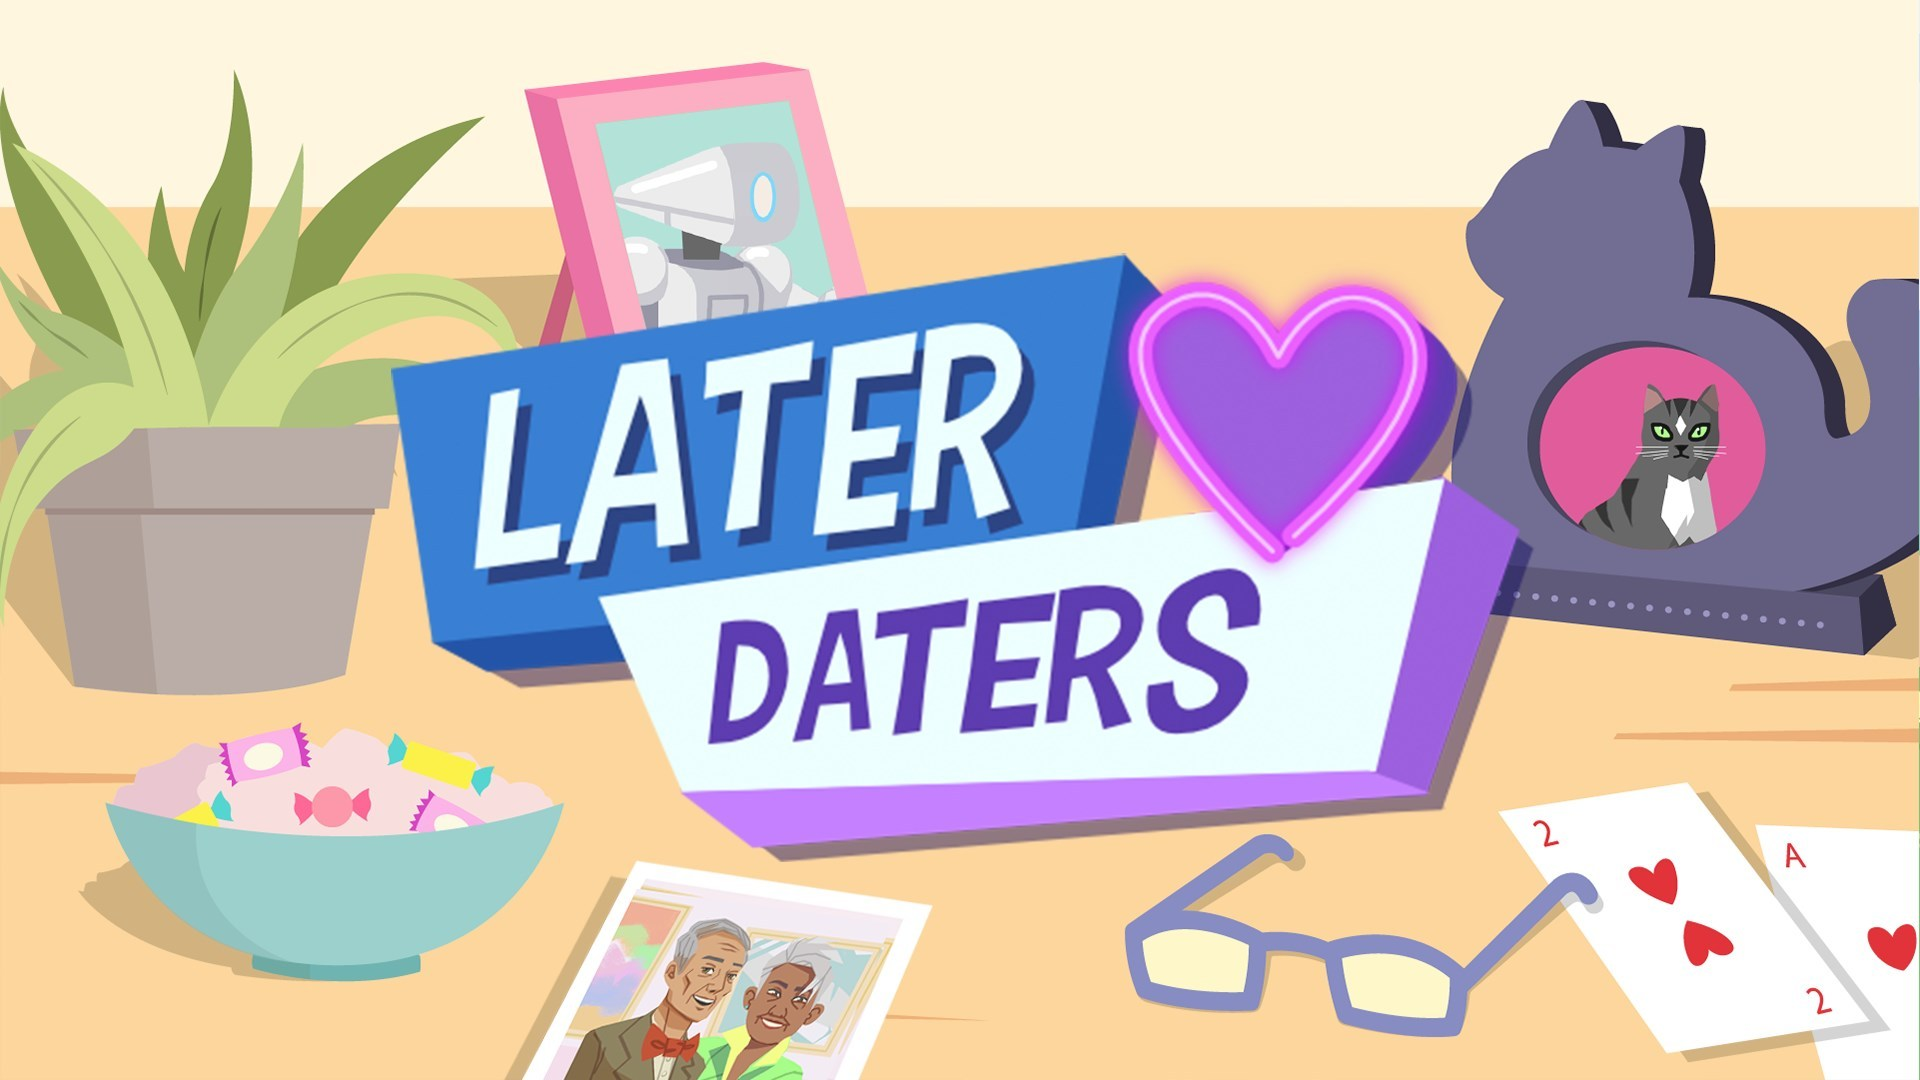 Later Daters Is Now Available For Xbox One And Xbox Series X|S 1